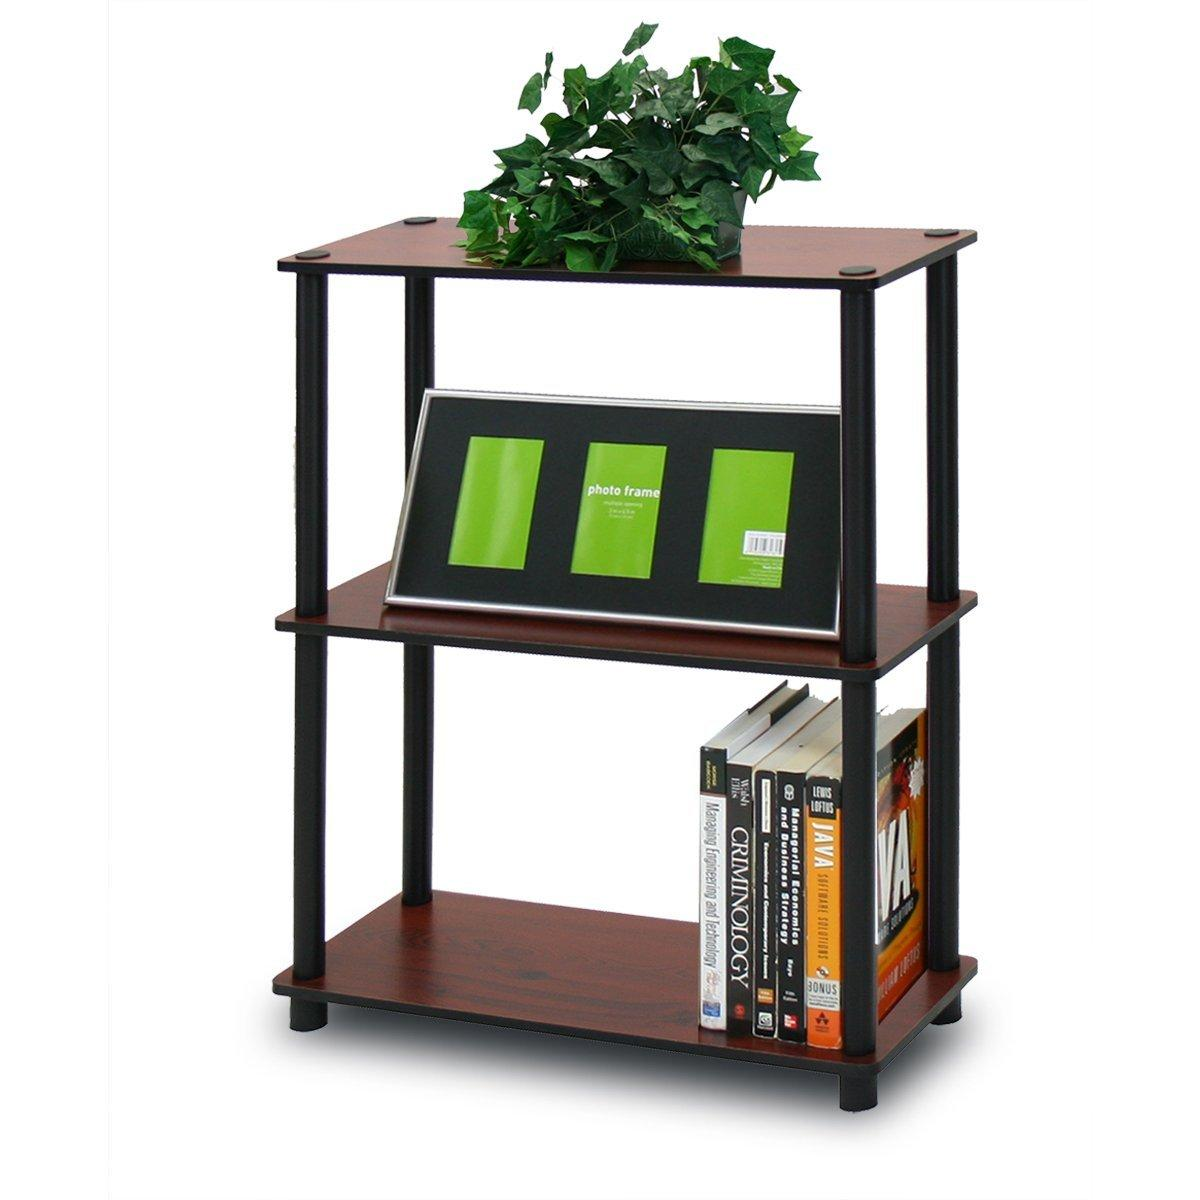 Furinno 10024DC/BK Turn-N-Tube 3-Tier Compact Multipurpose Shelf Display Rack,